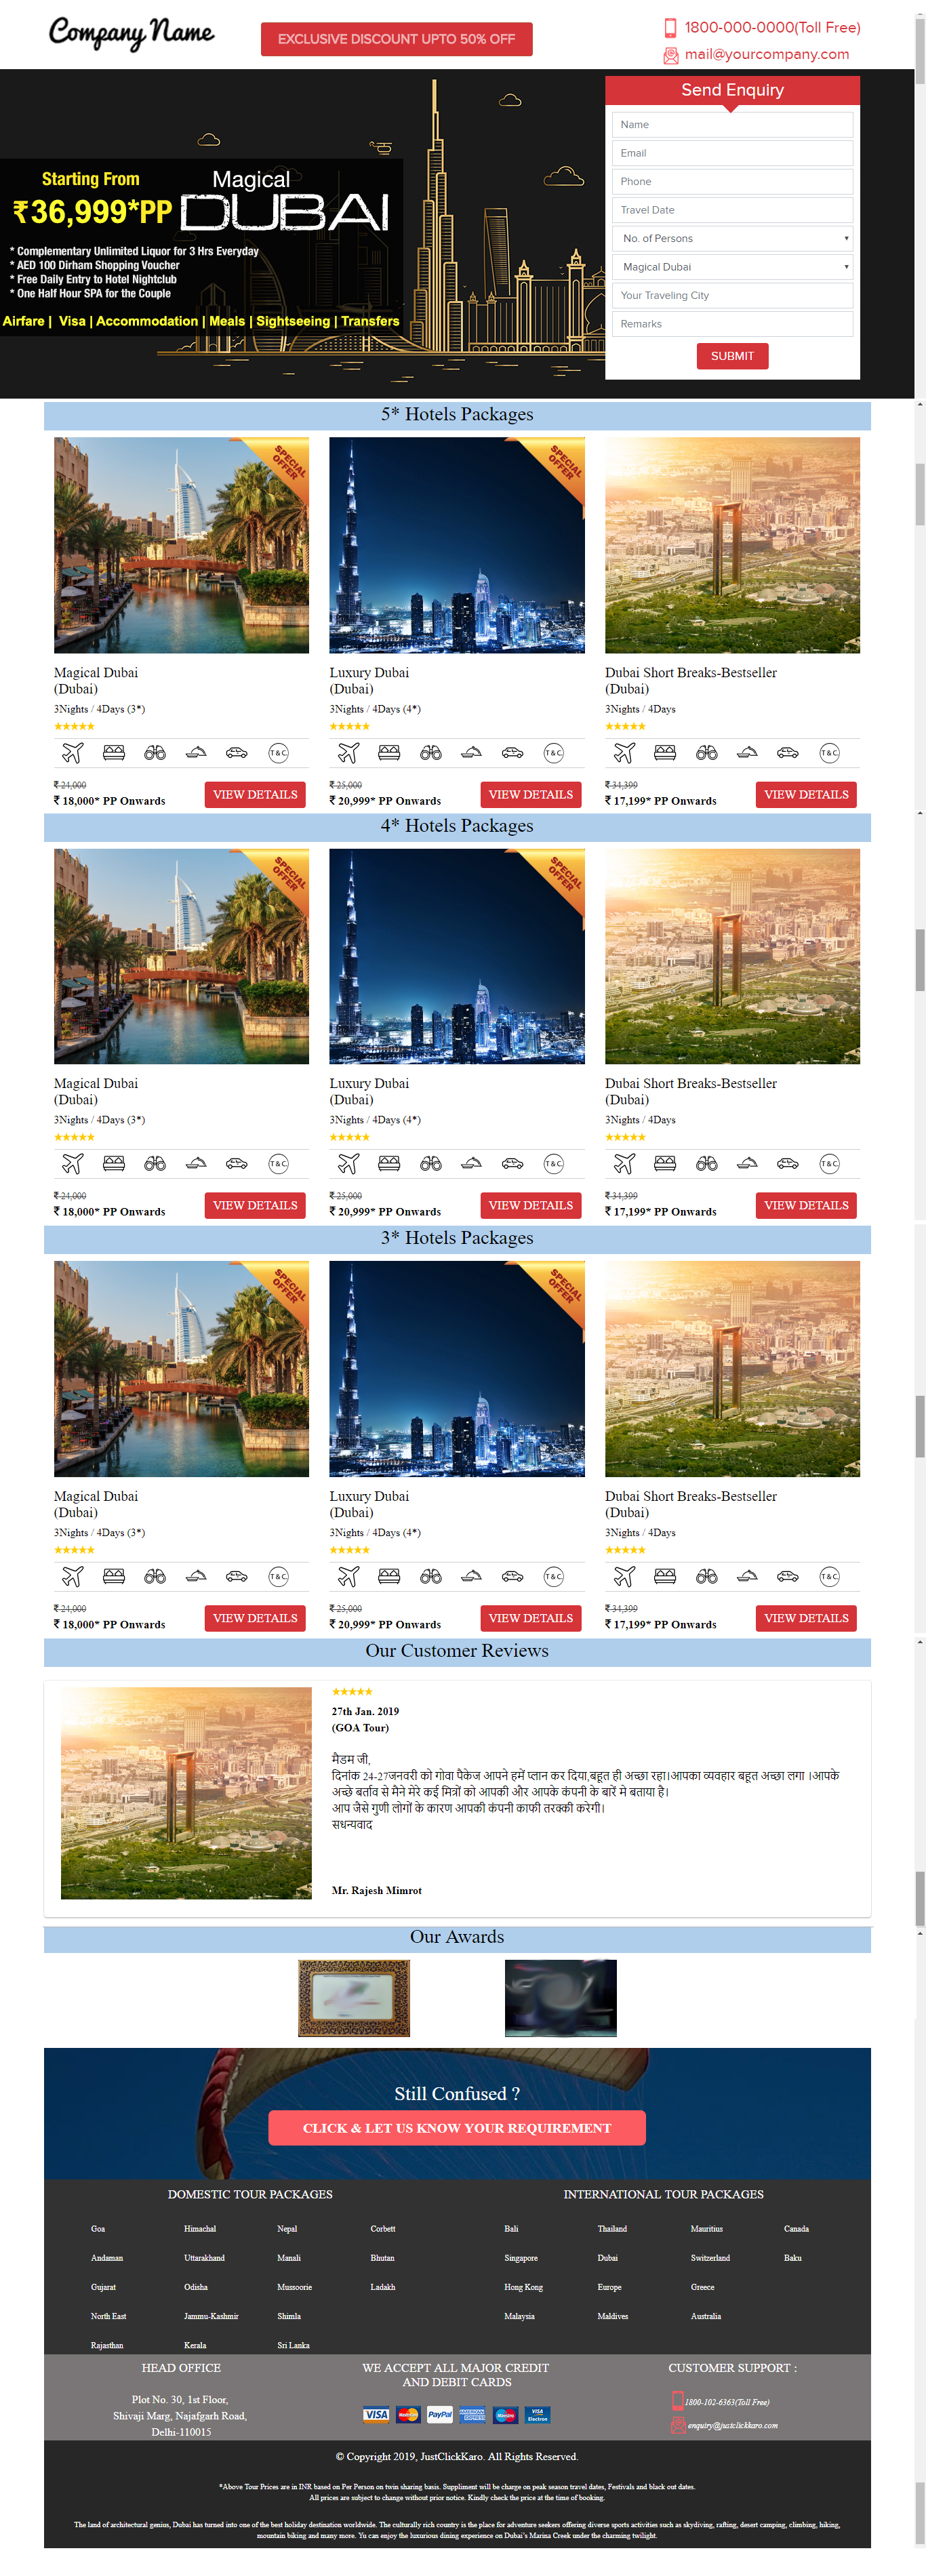 online tour package booking template design